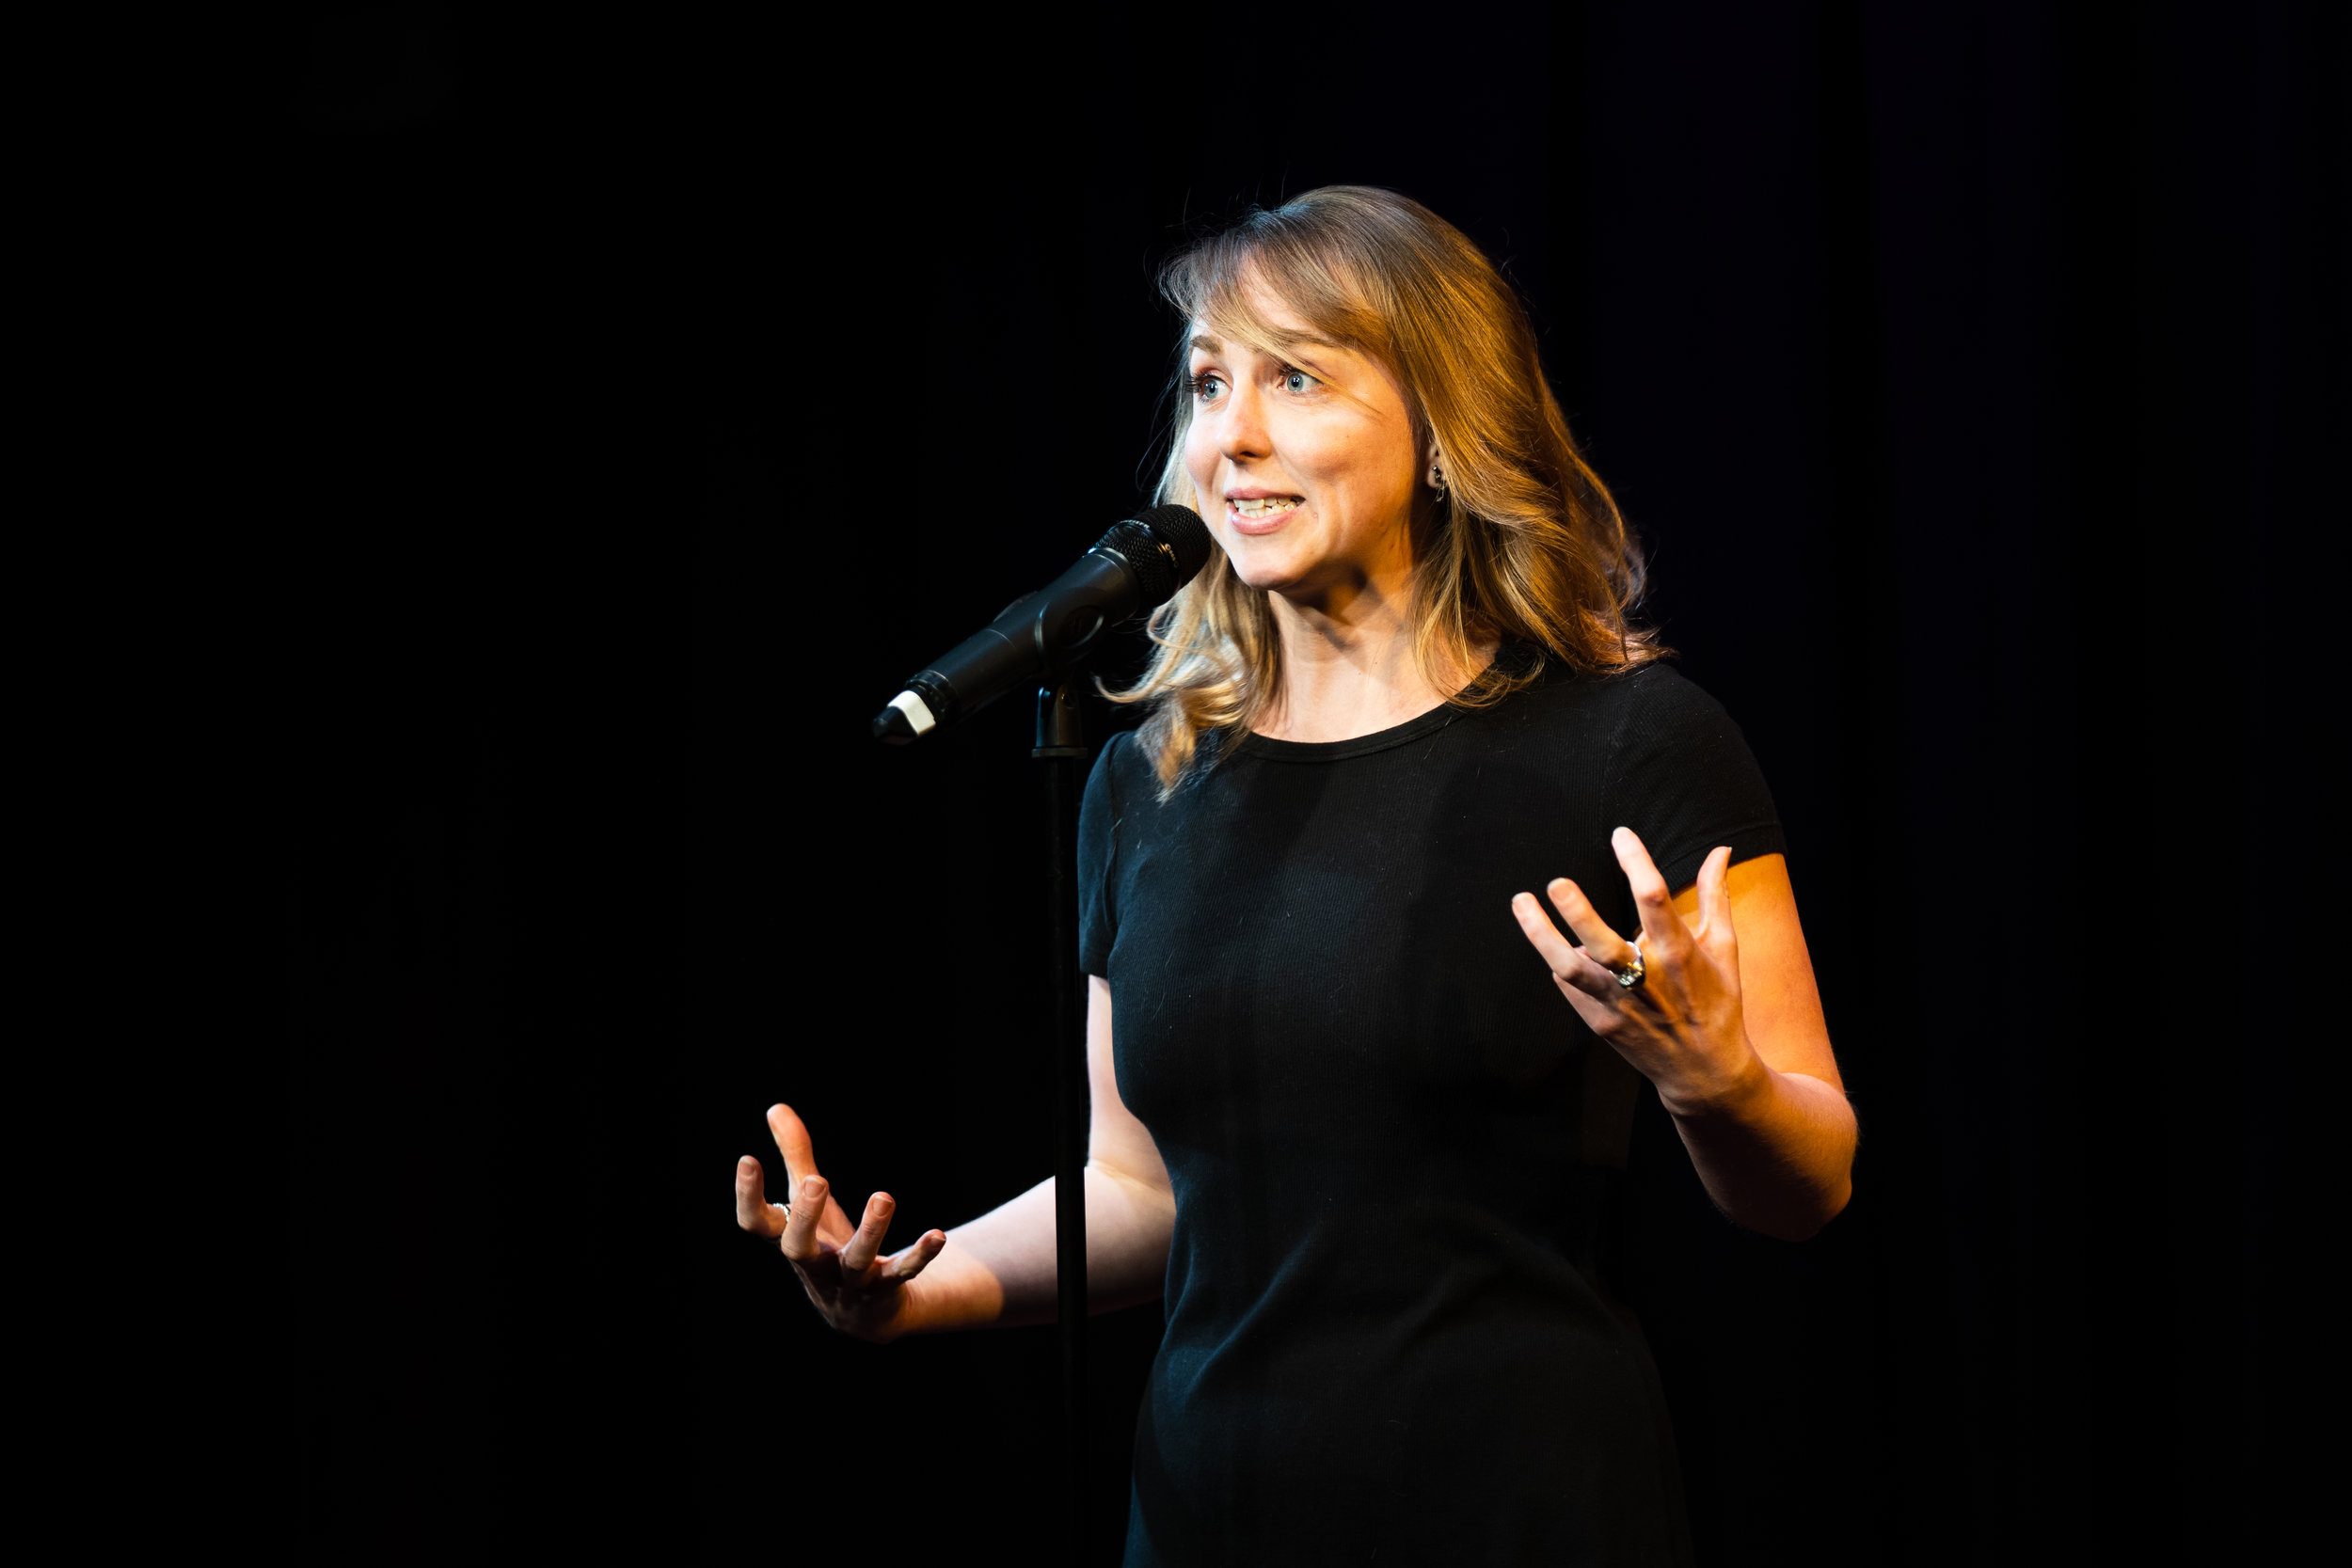 Adrien Behn shares her story with the Story Collider audience at Caveat in New York City in December 2018. Photo by Zhen Qin.